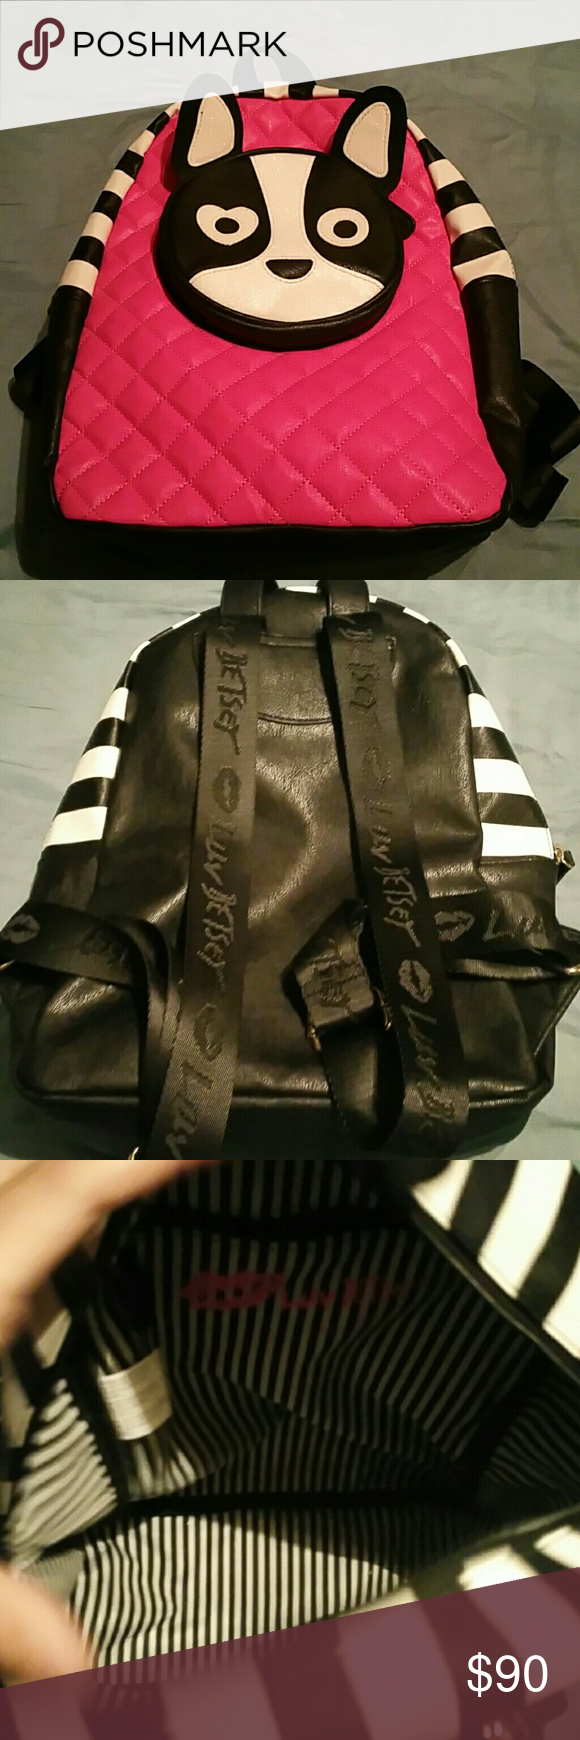 Betsey Johnson backpack New never used... so so cute Betsey Johnson Bags